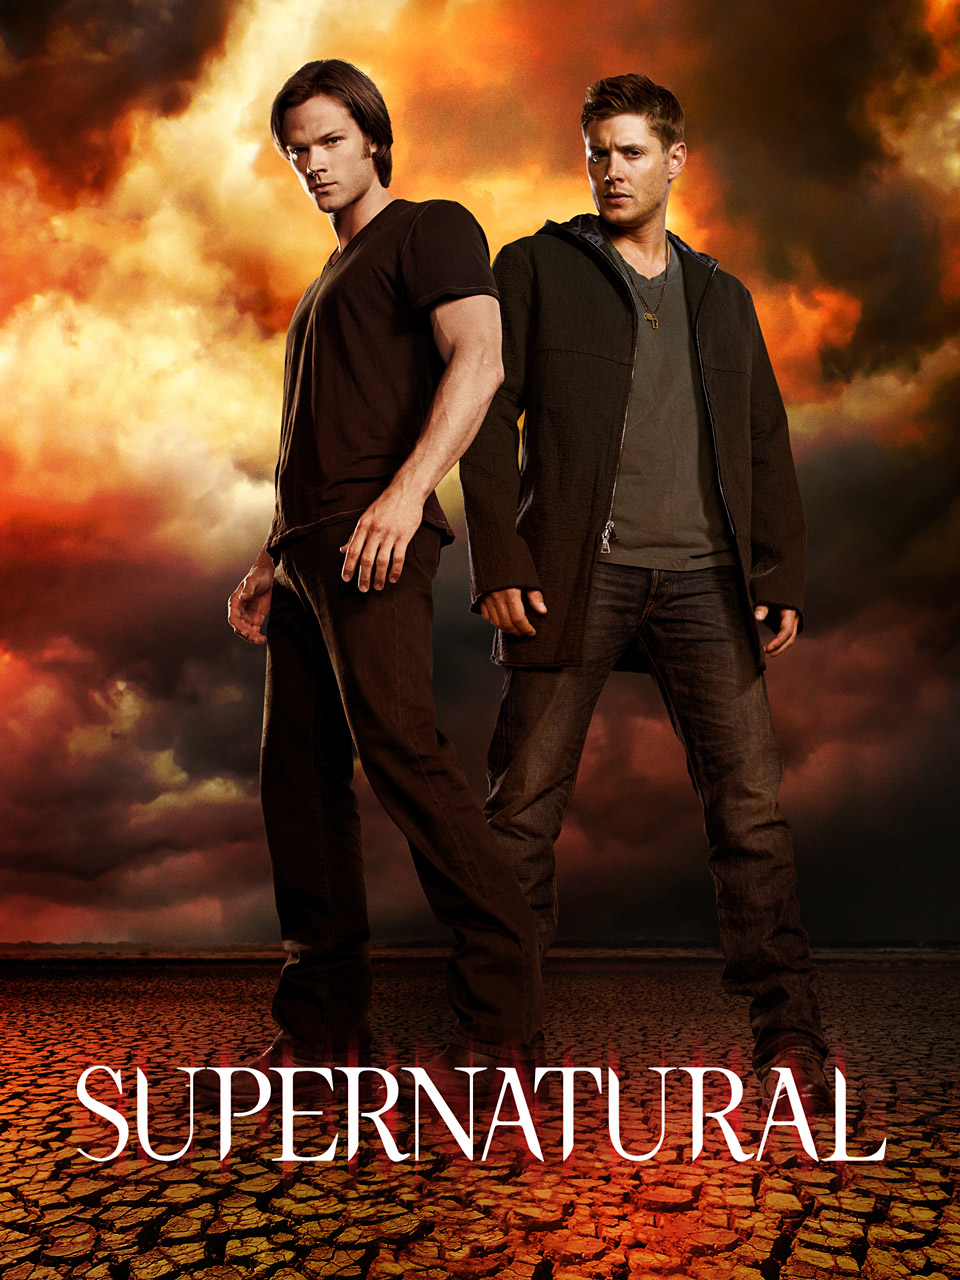 Supernatural Poster - Supernatural Photo (30766893) - Fanpop